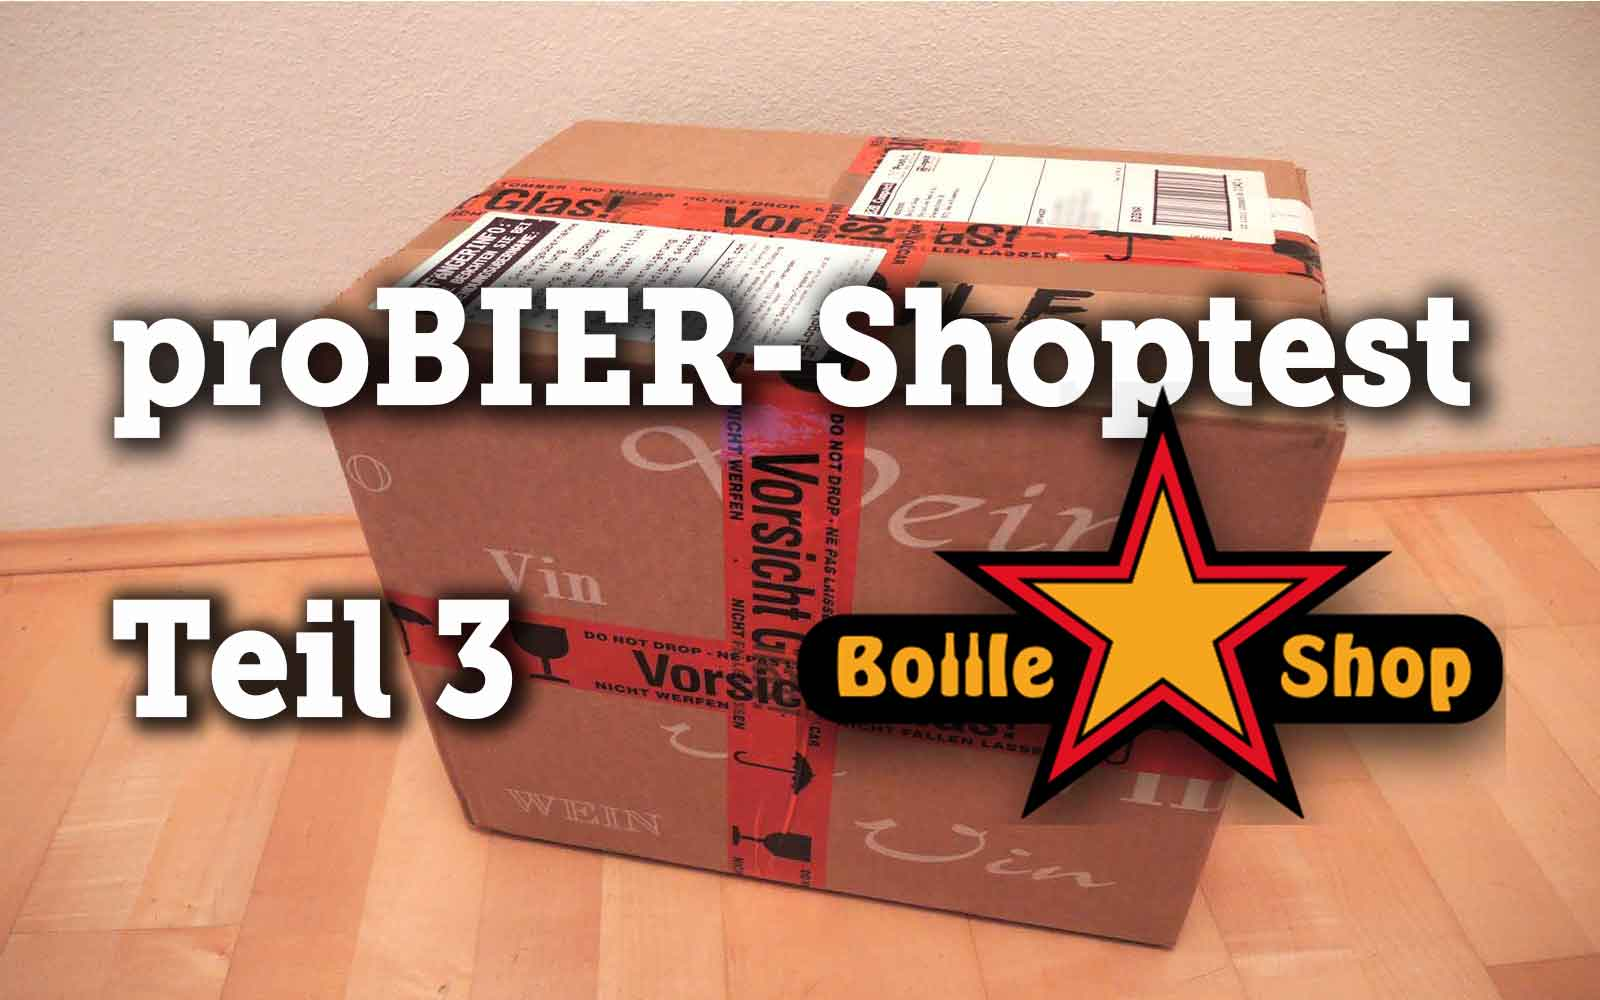 proBIER!-Shoptest Teil 3: Bottle Shop – A